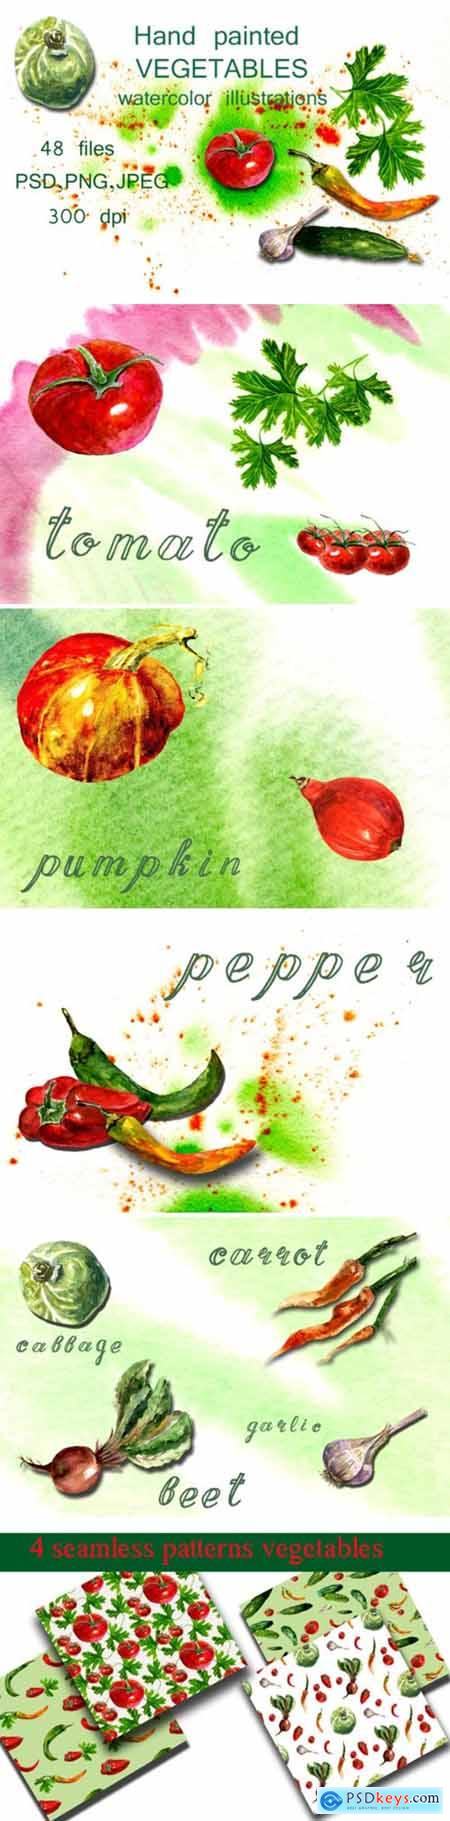 Watercolor Illustrations Vegetables 1657912